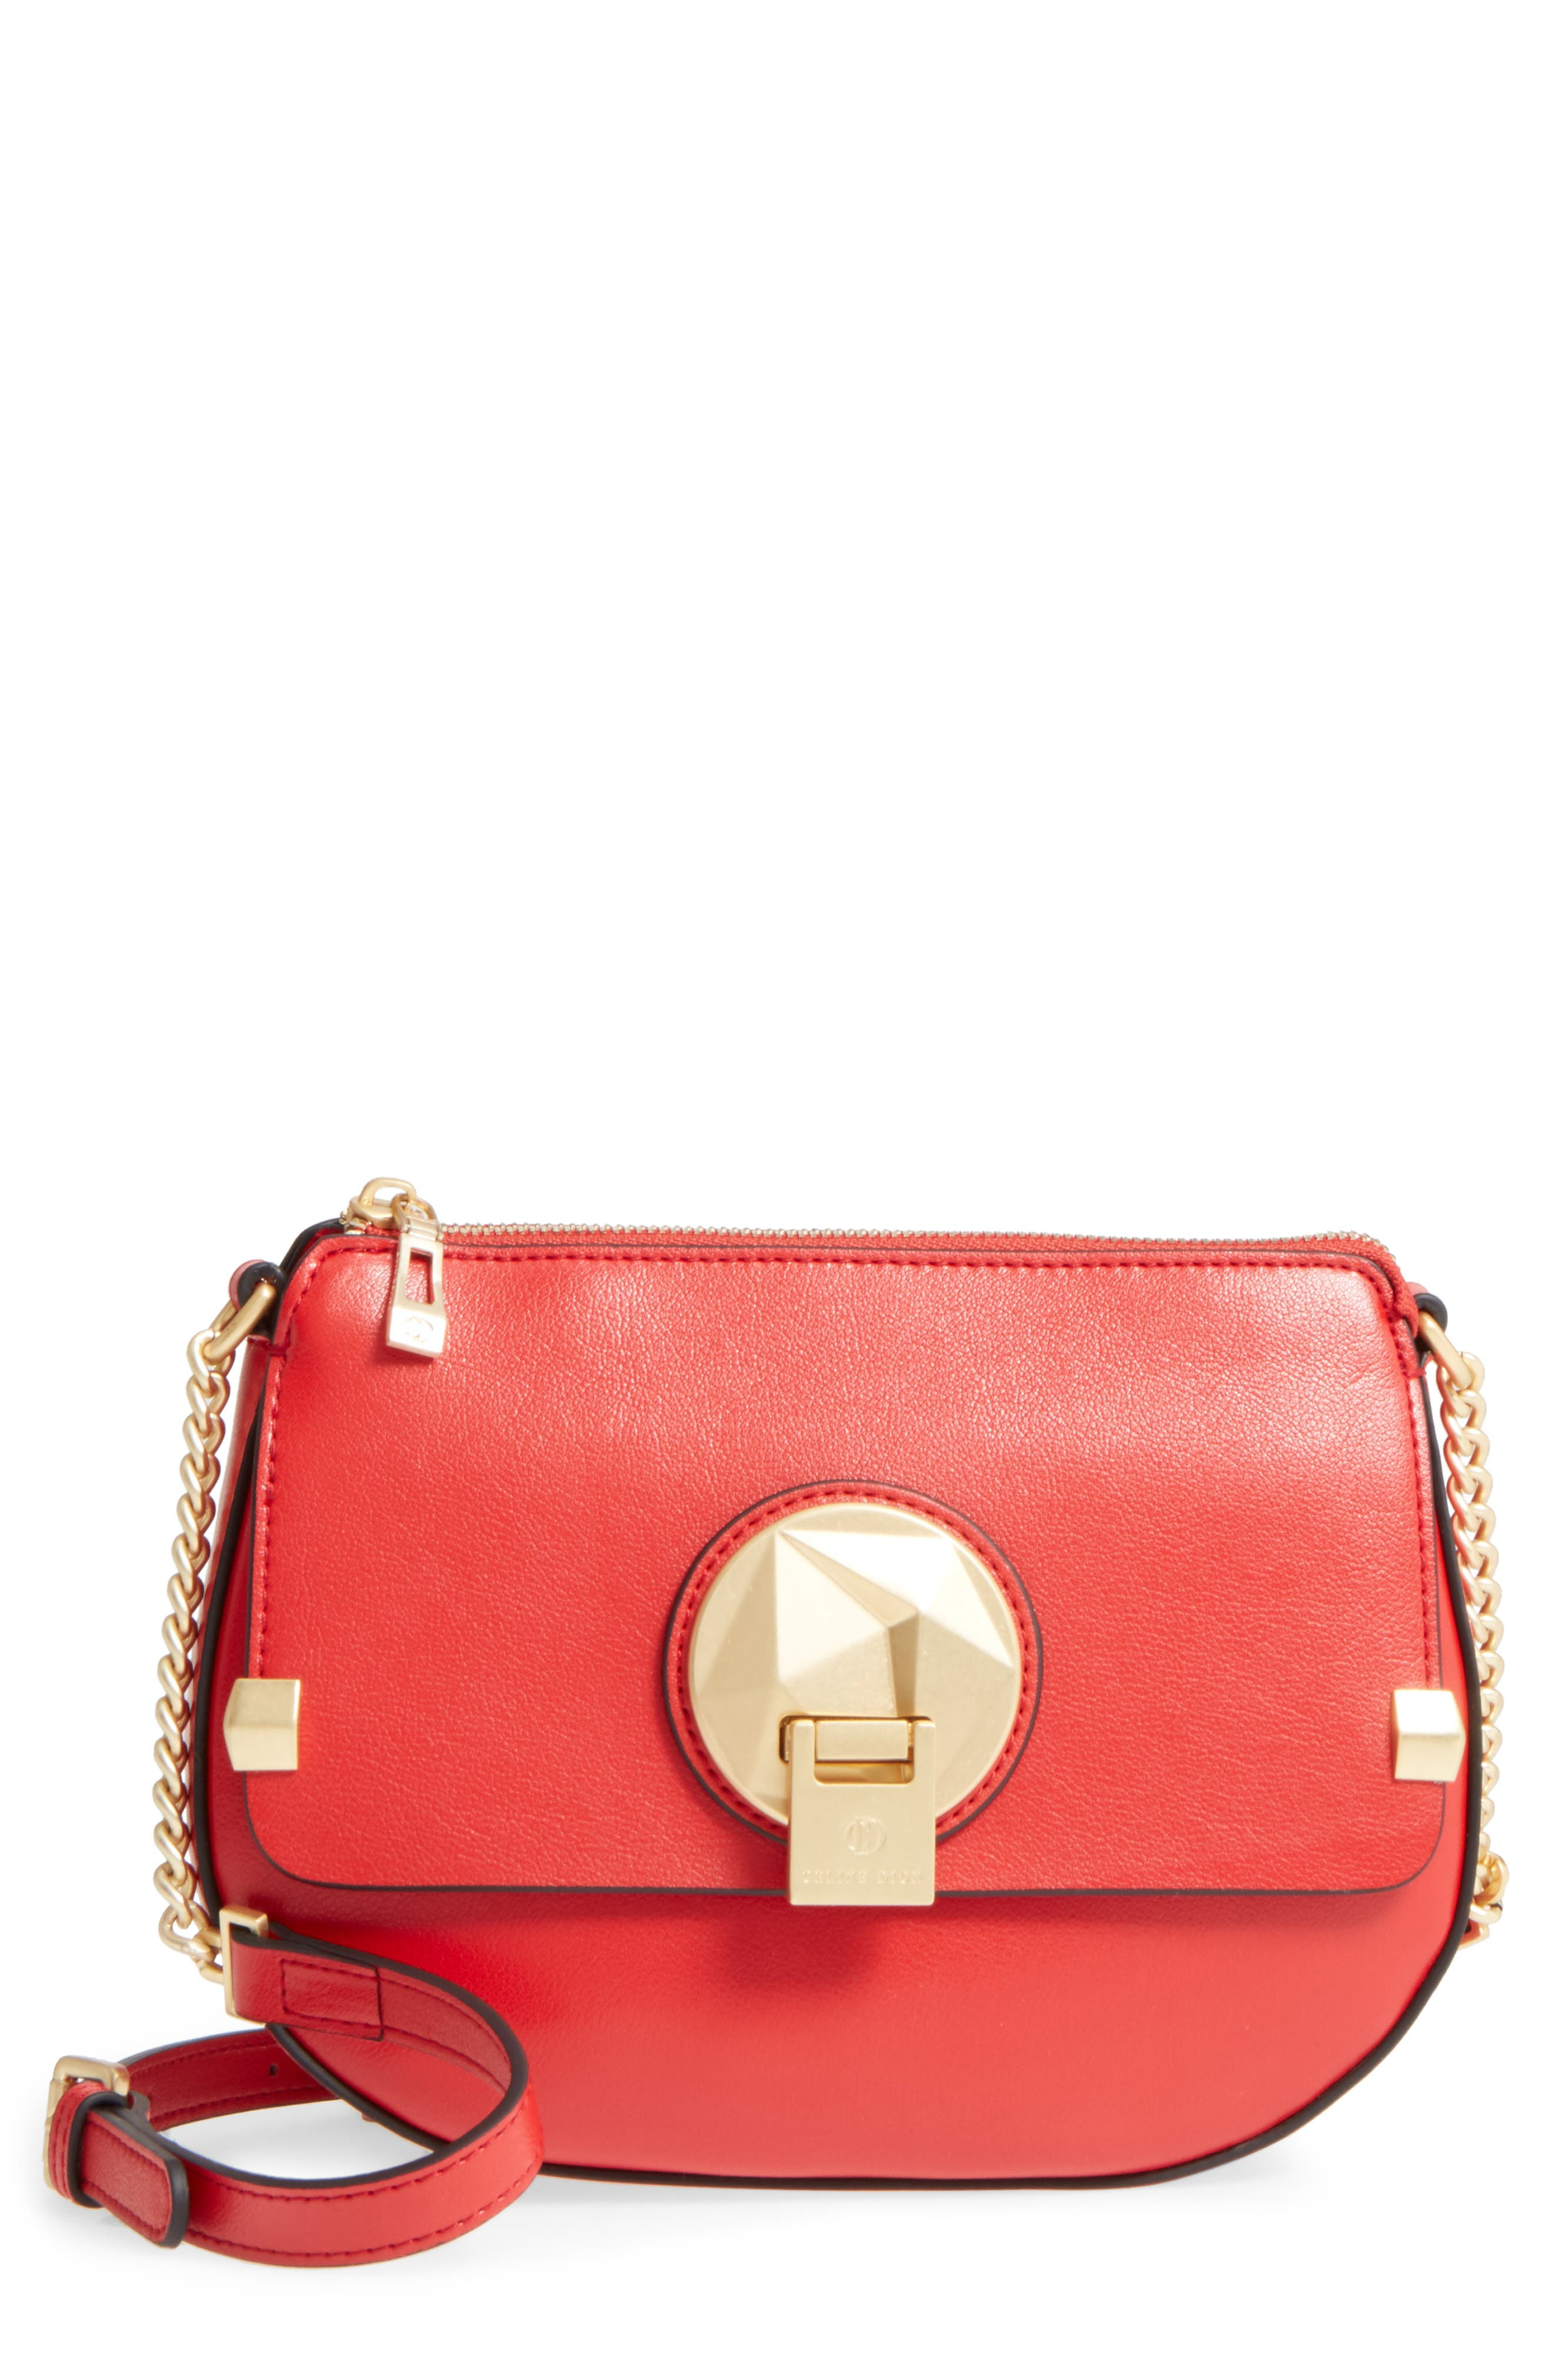 Main Image - Céline Dion Octave Leather Crossbody Bag